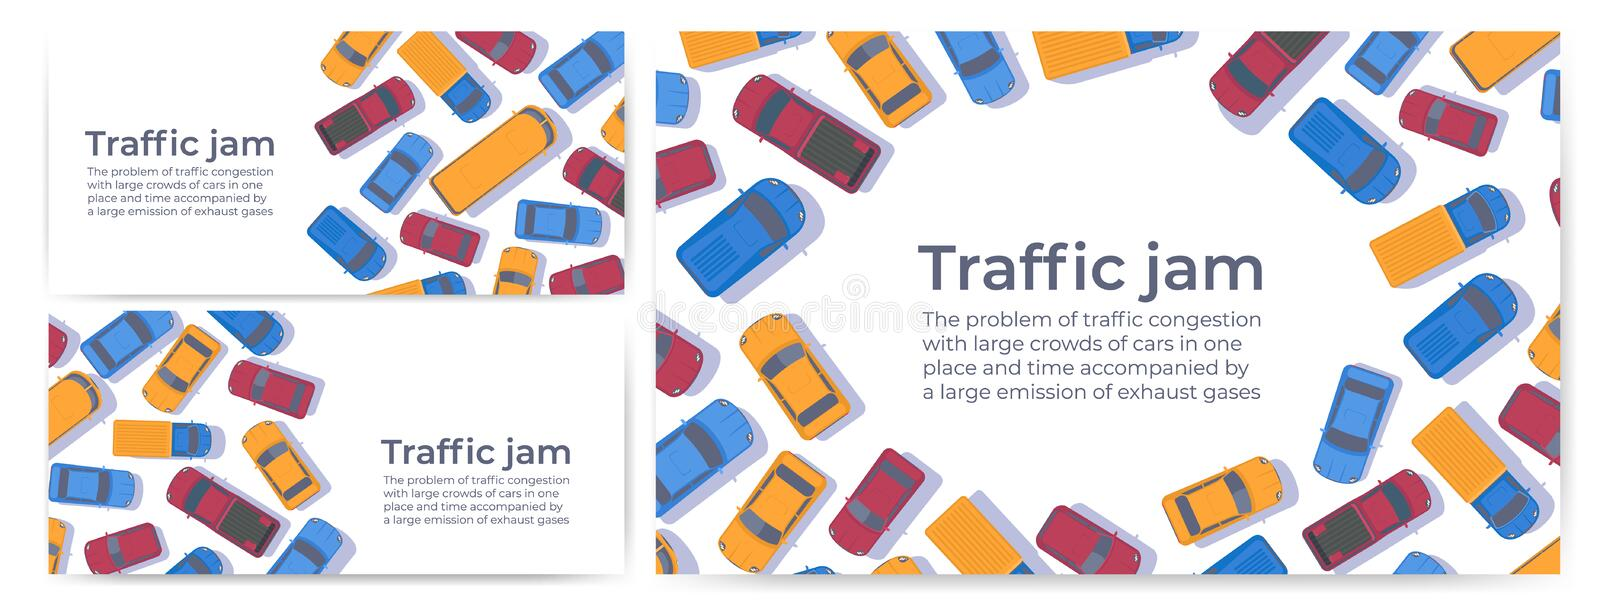 Traffic jam. Large congestion of cars. Web banner or poster design template. Traffic jam. Large congestion of cars. Set of web banner or poster design template royalty free illustration